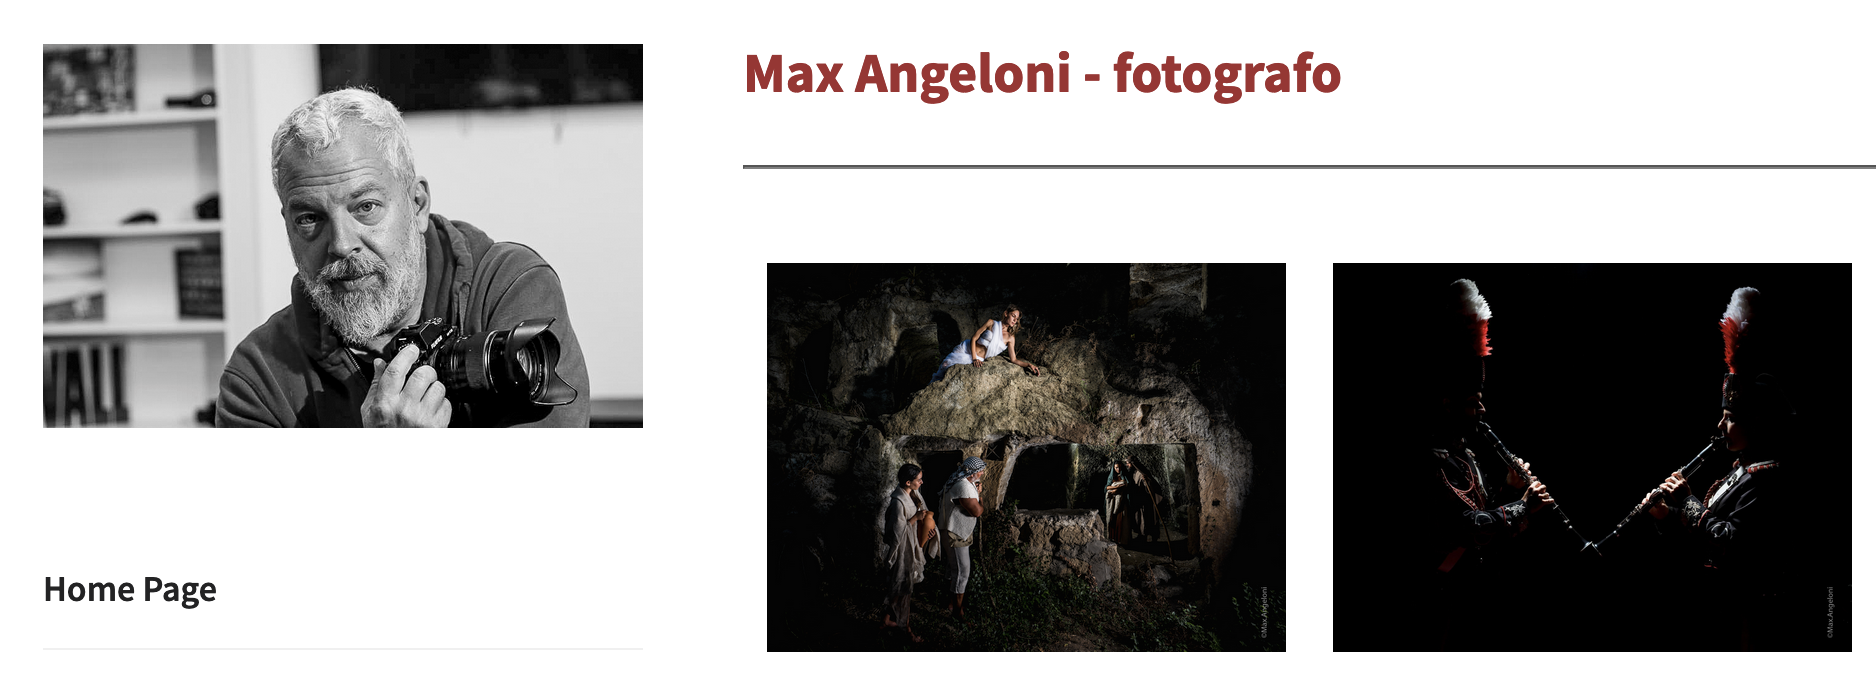 Max Angeloni Web Site